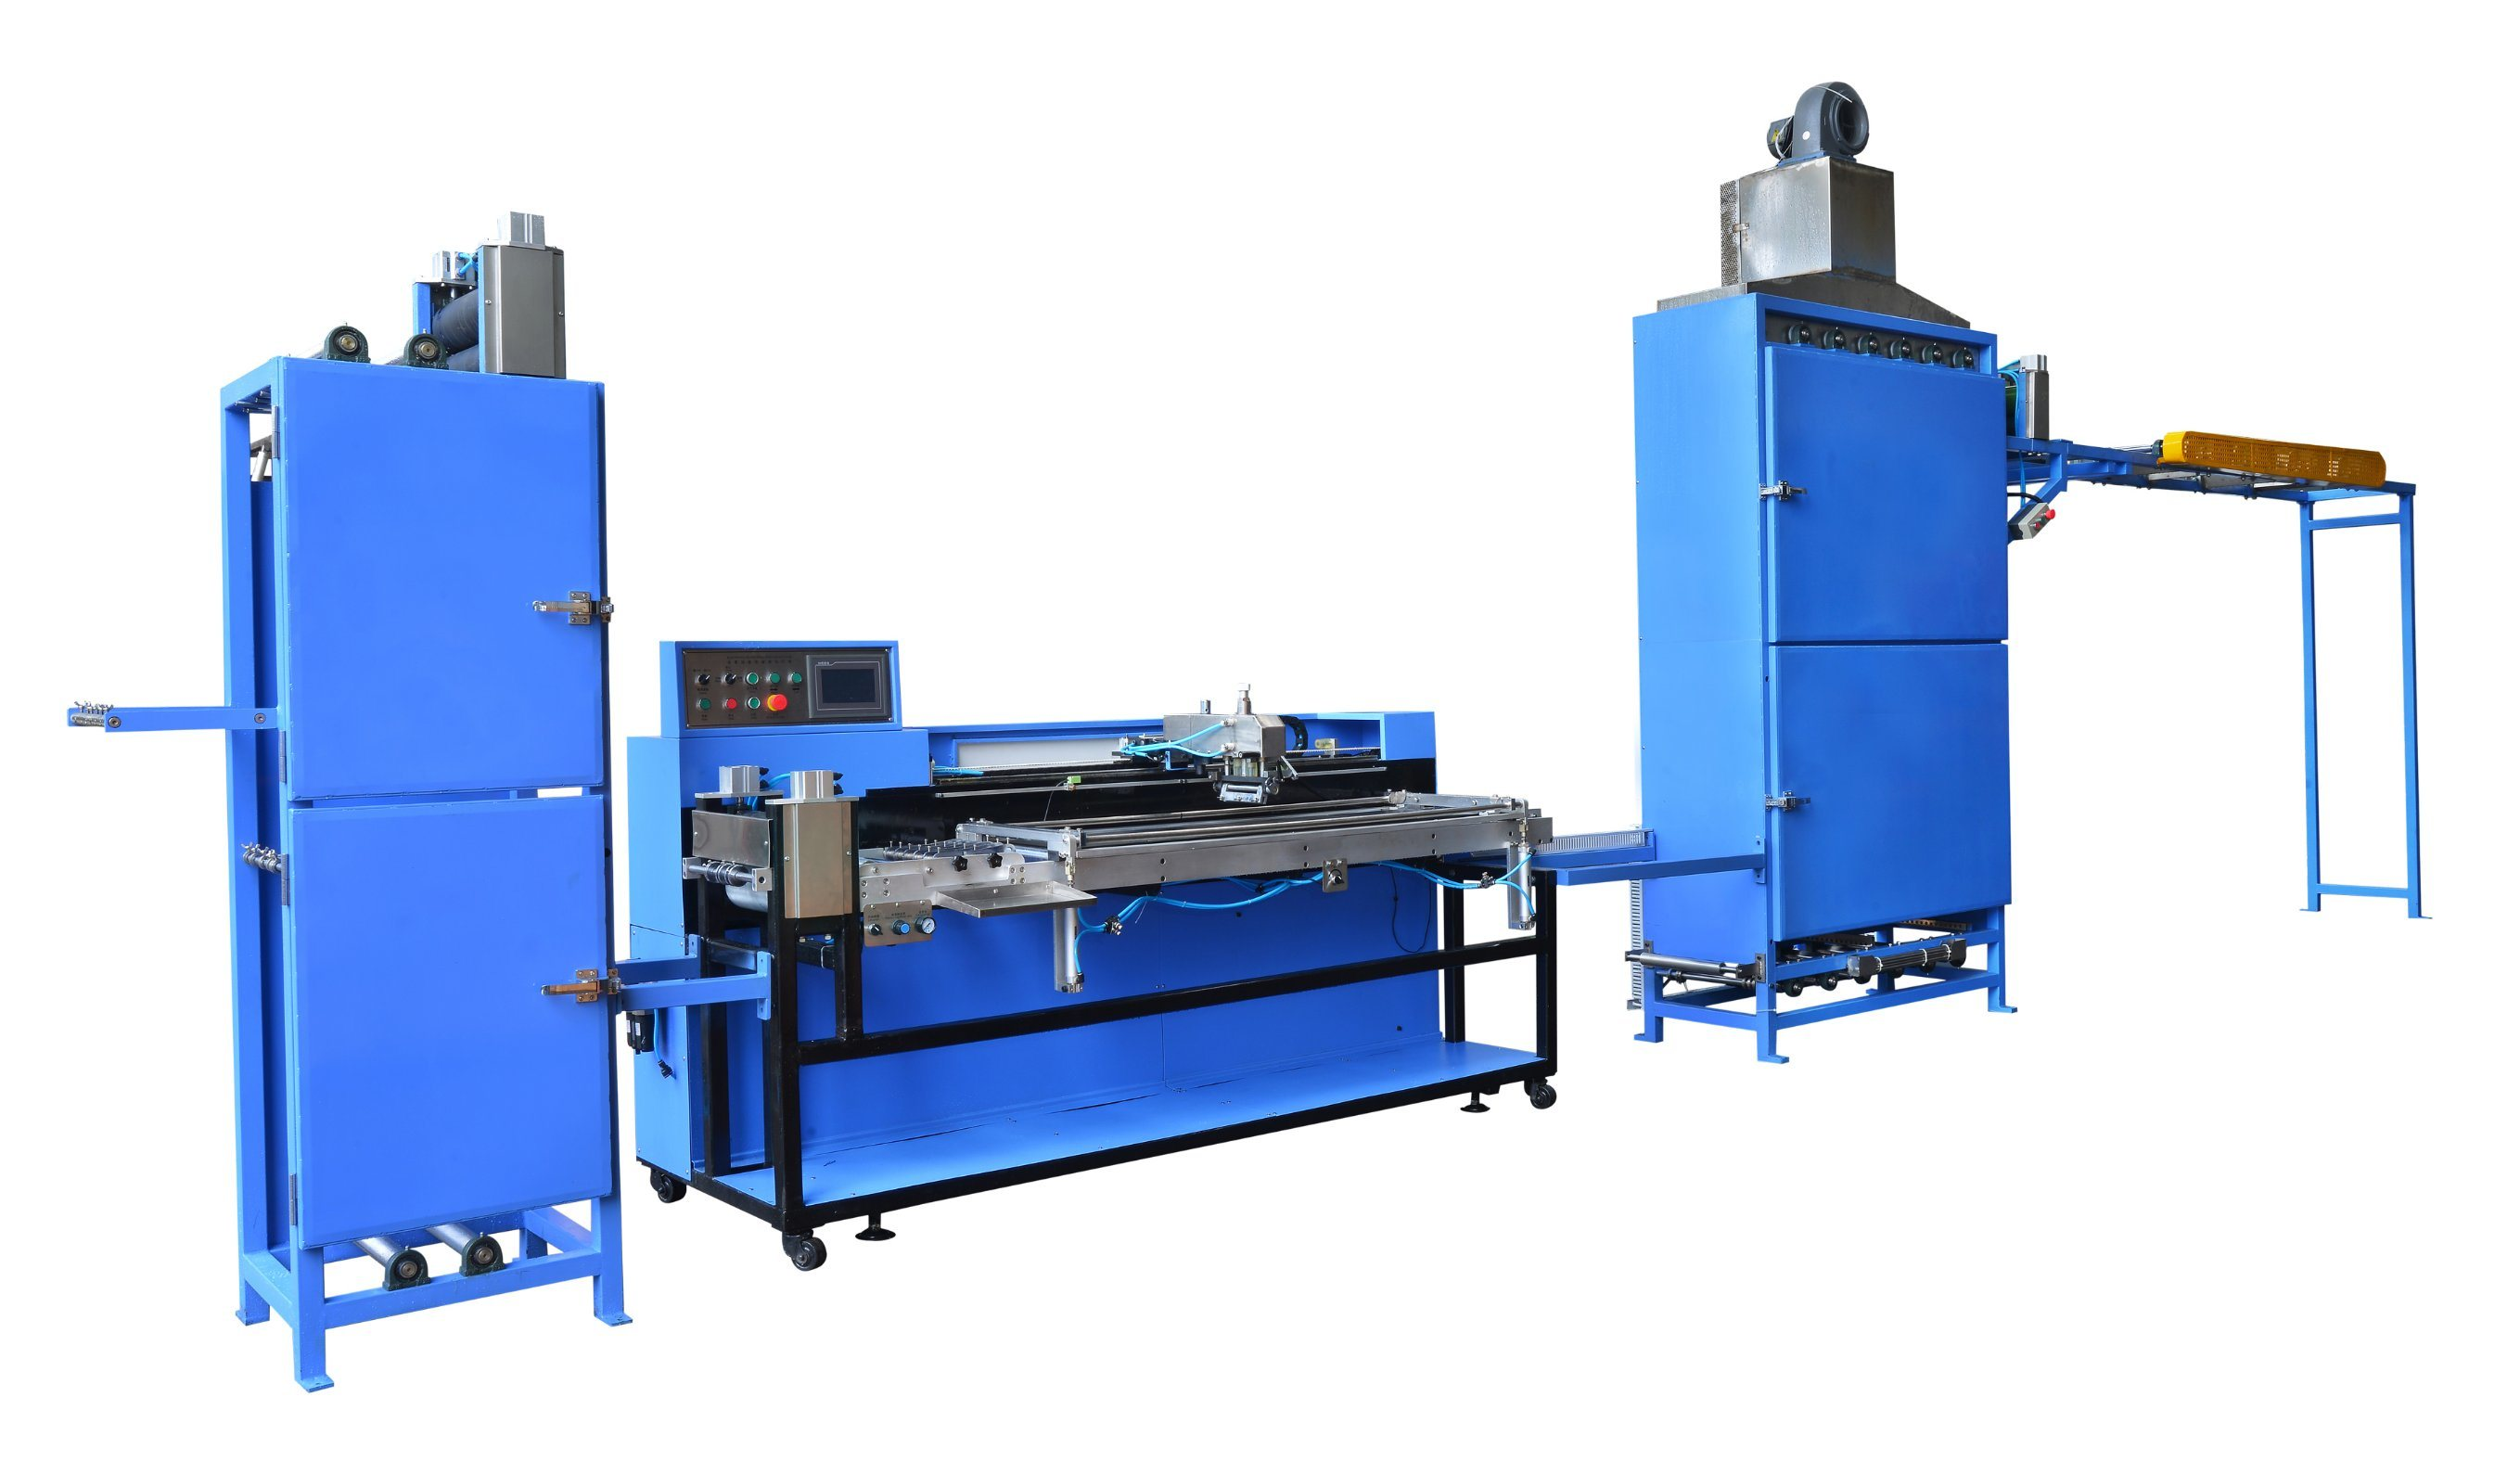 Harness Webbing Automatic Screen Printing Machine Featured Image